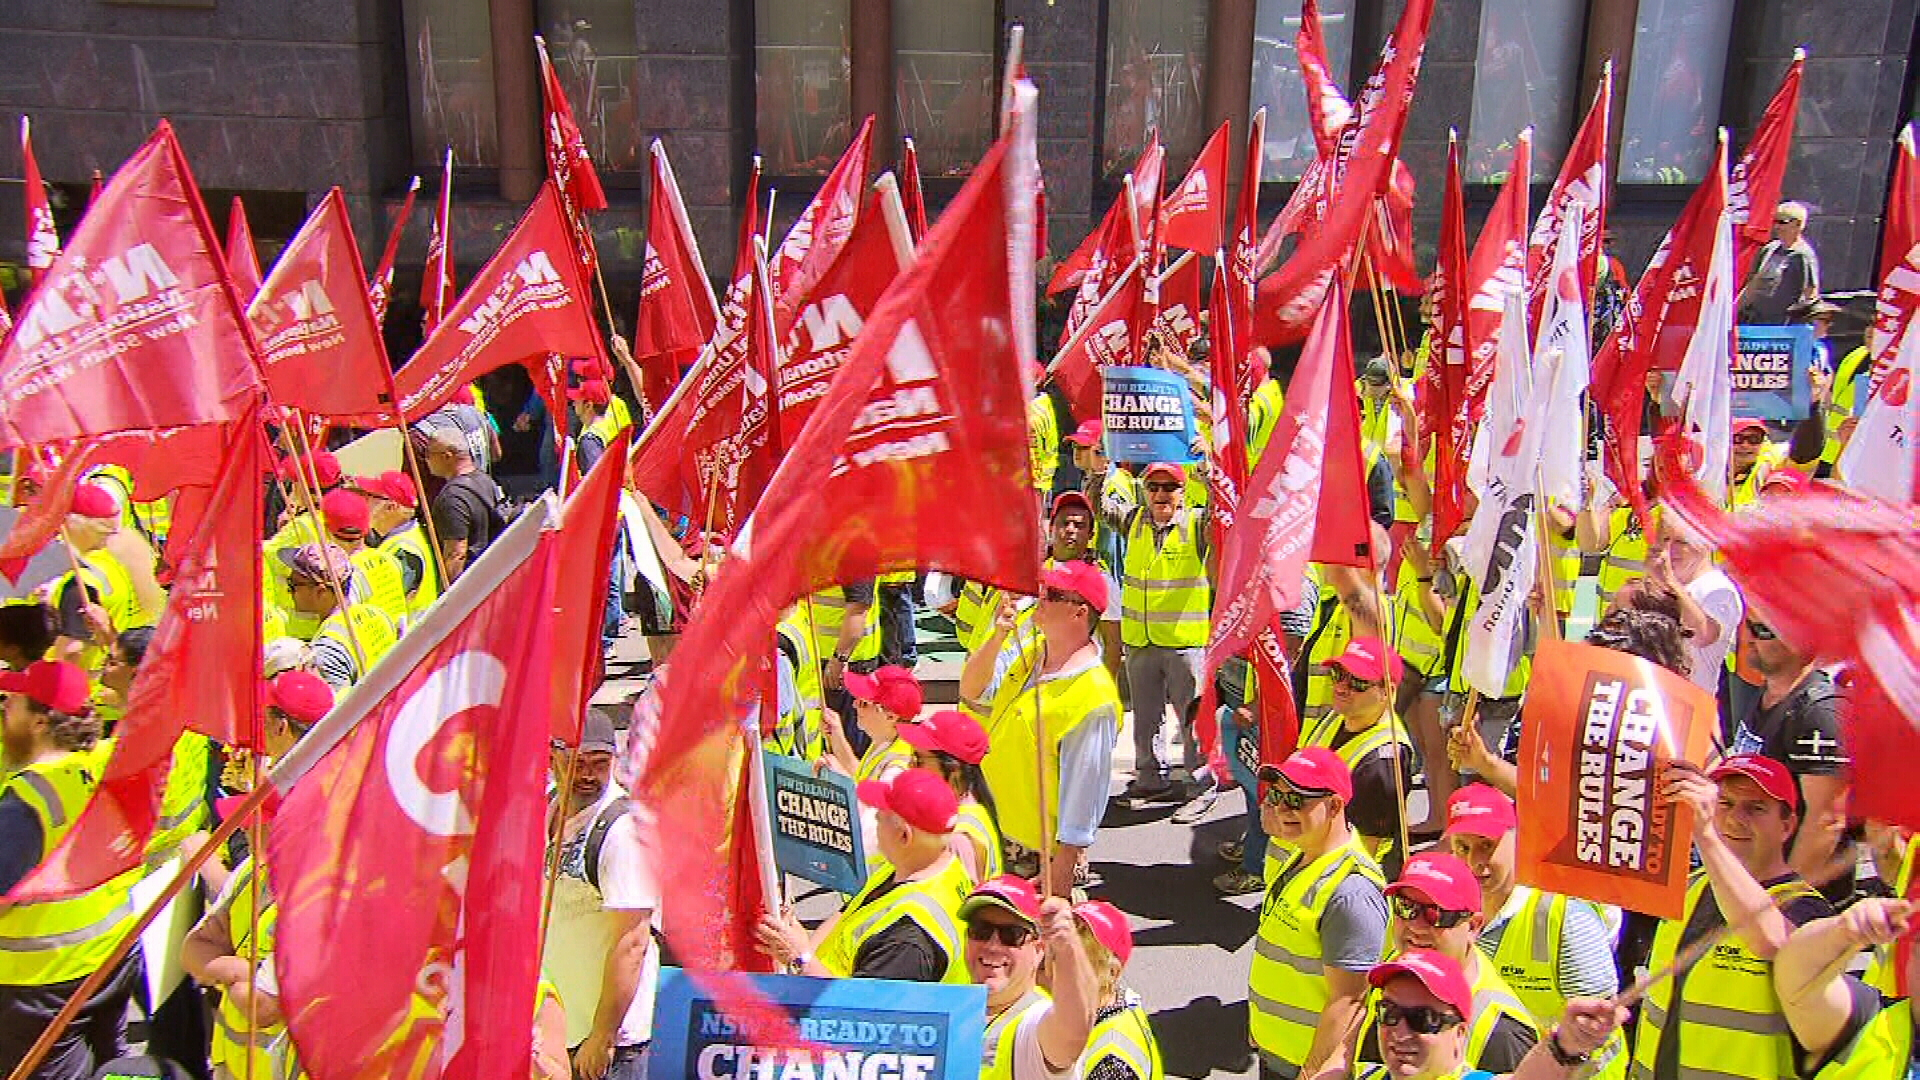 Sydney workers rally for better pay